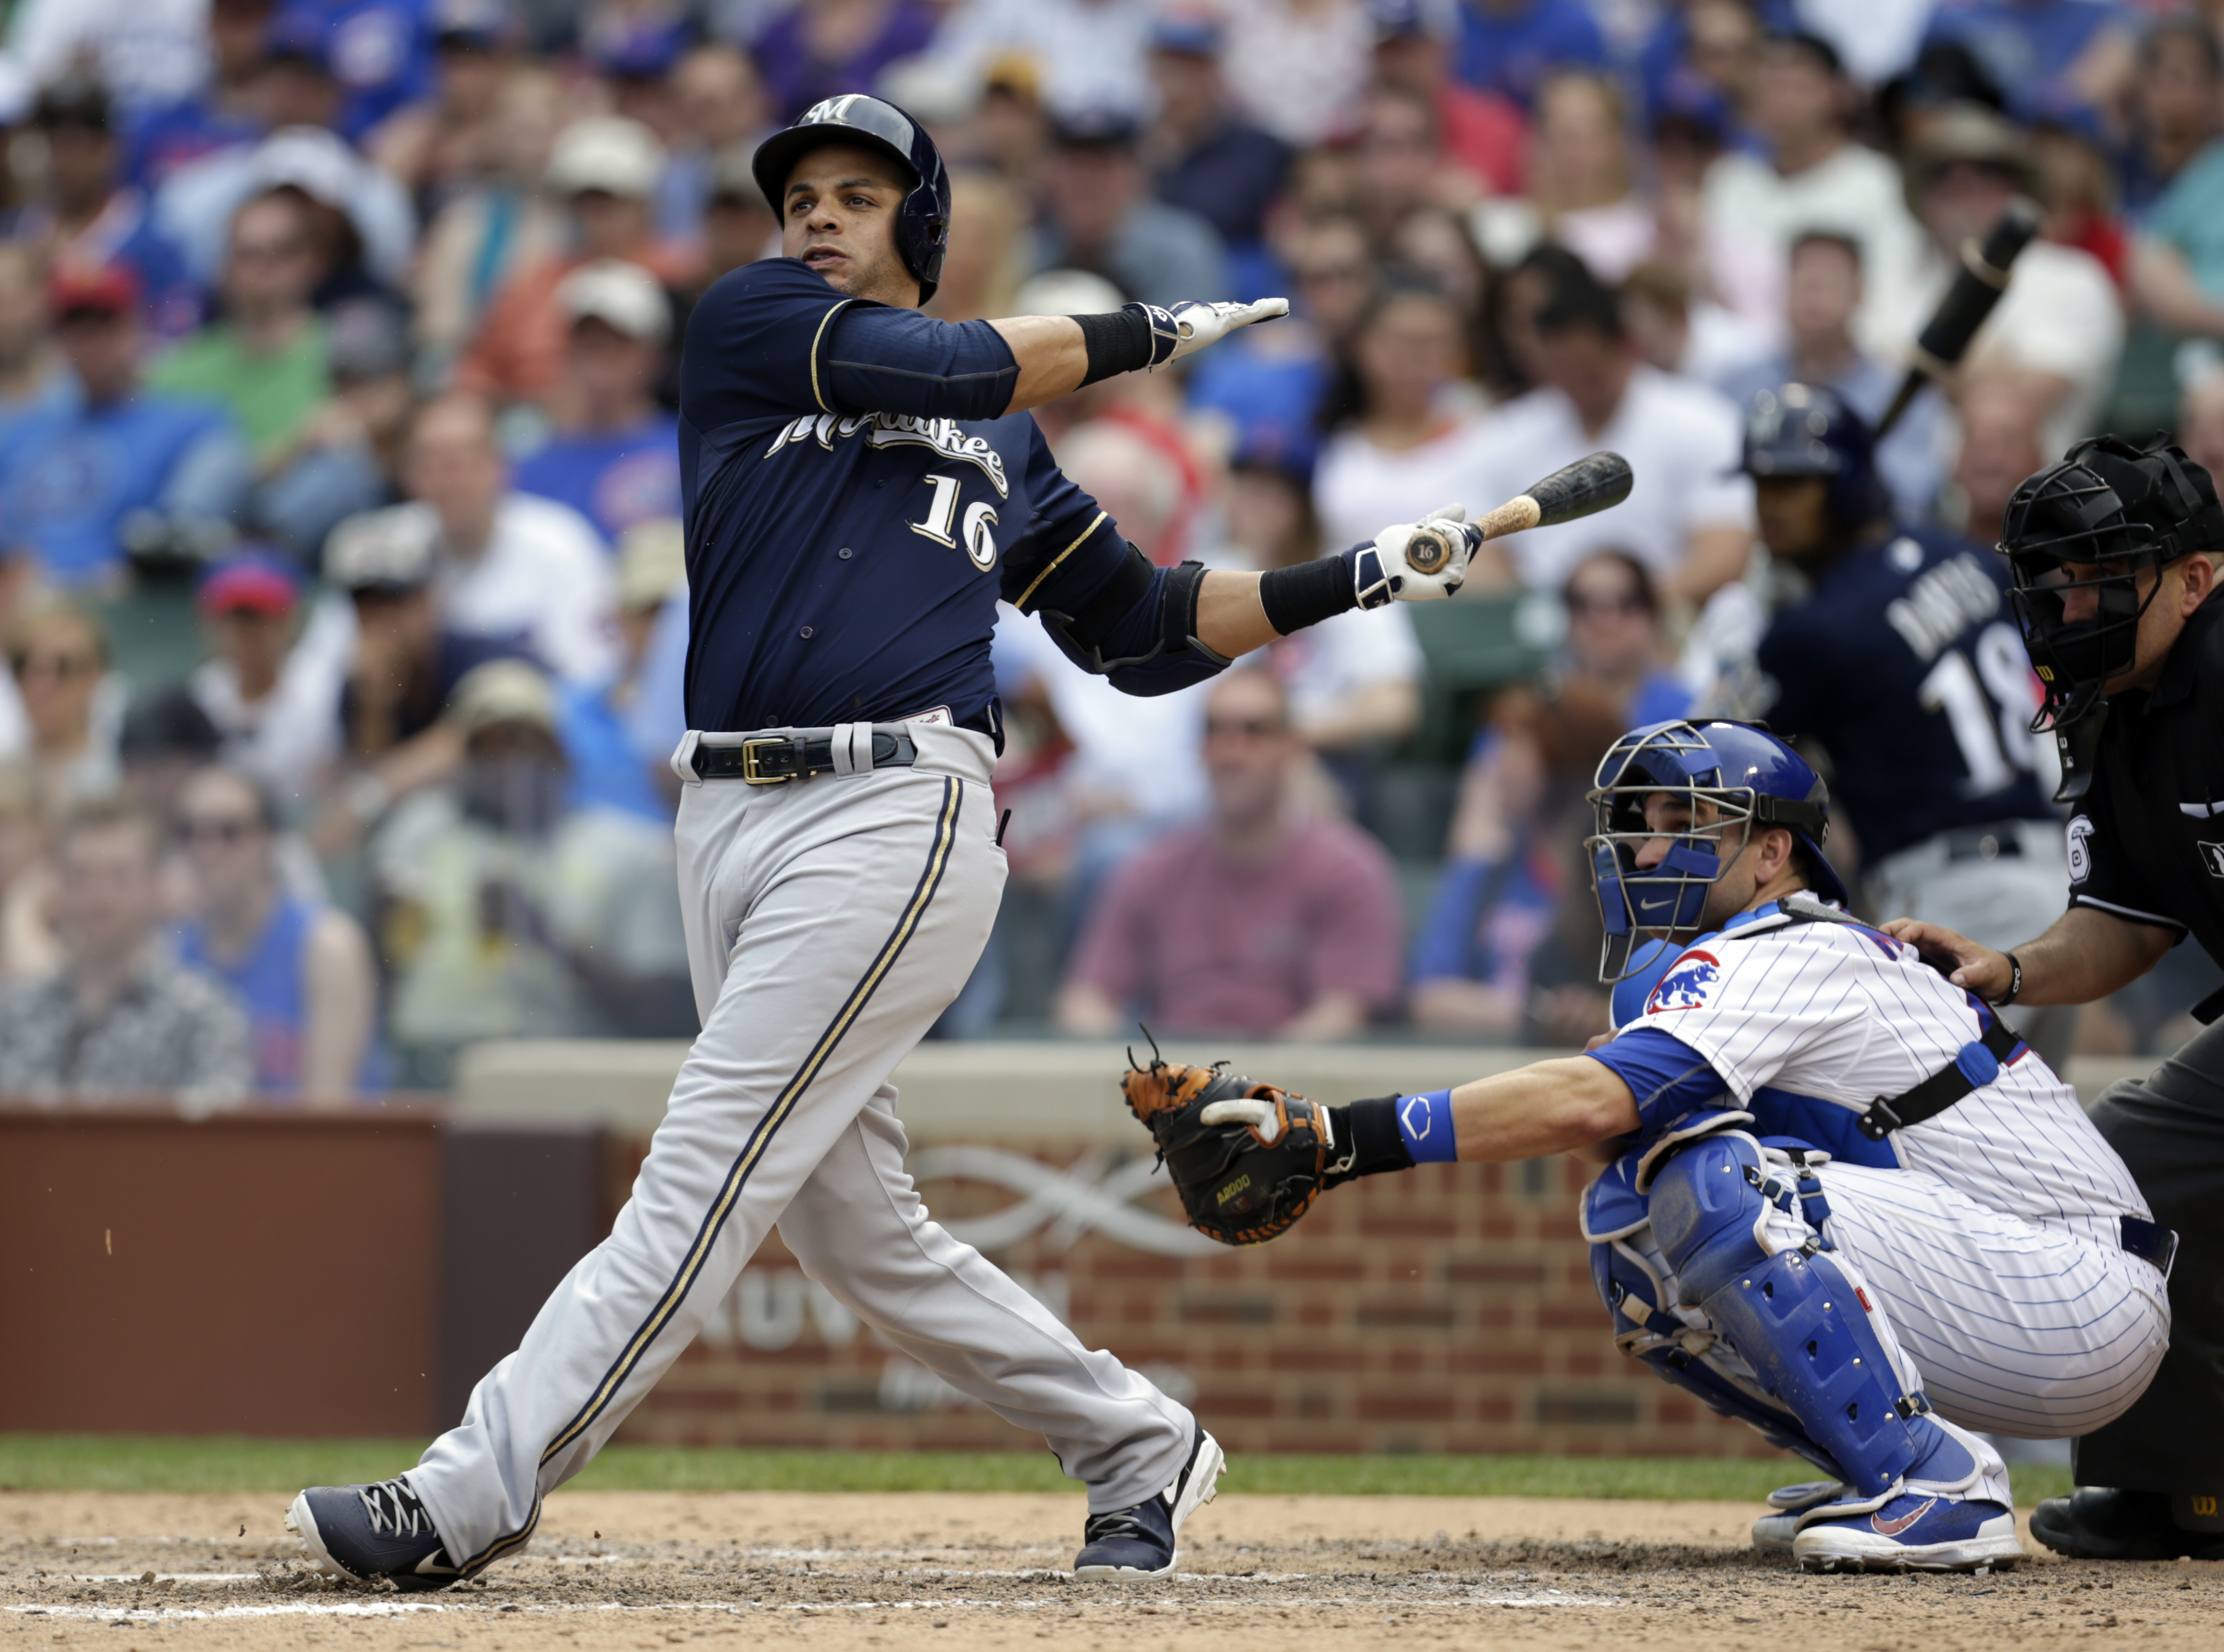 Milwaukee Brewers third baseman Aramis Ramirez (16) watches his two RBI single during the eighth inning of a baseball game as Chicago Cubs catcher Miguel Montero watches in Chicago, on Sunday, May 3, 2015. The Brewers won the game 5-3. (AP Photo/Jeff Hayn